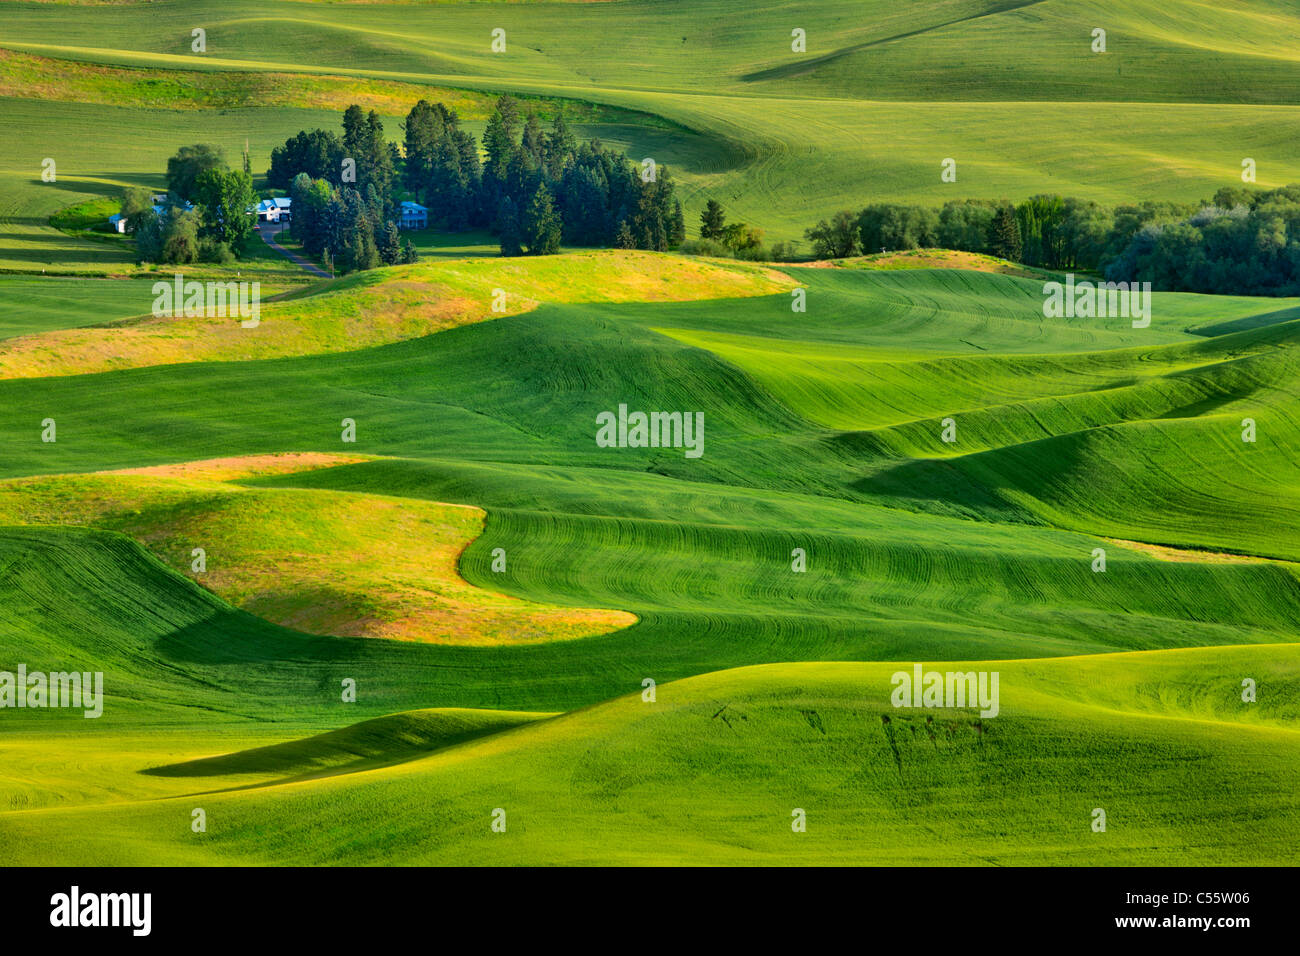 Portrait de champs verts, Steptoe Butte, Palouse, Washington State, USA Photo Stock